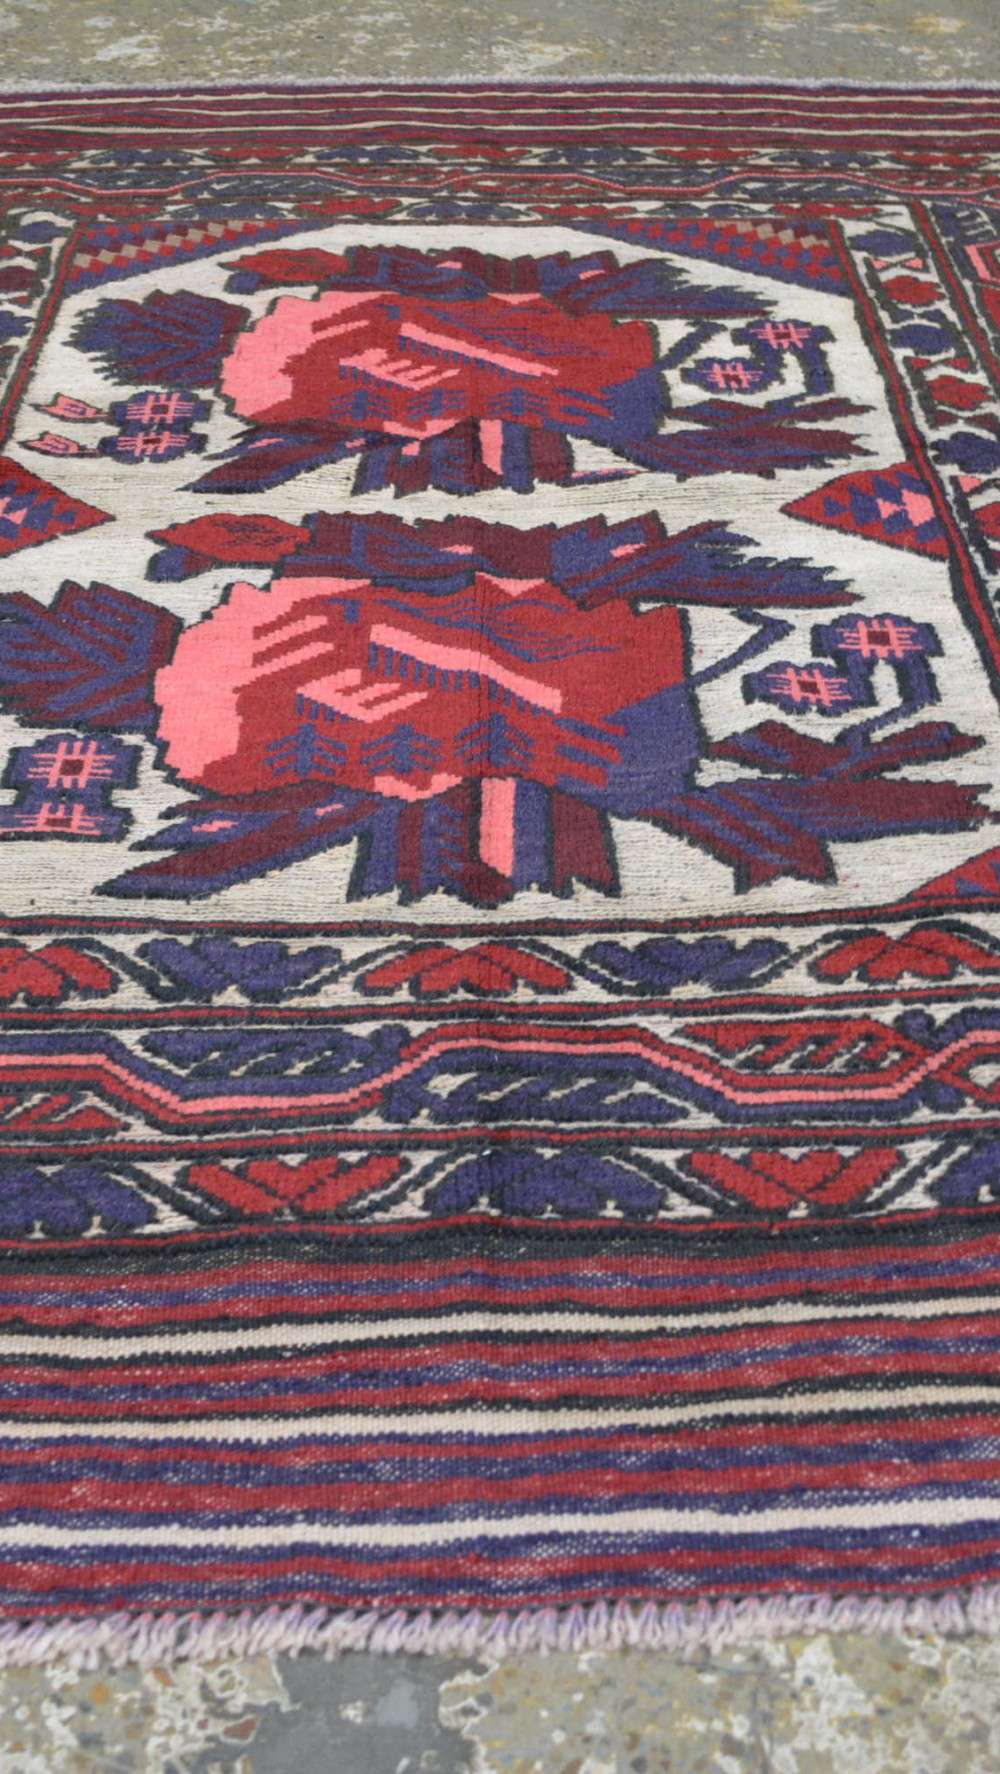 Rugs And Kilims Are The Master Elements Of Bohemian Style: Kilim Rugs